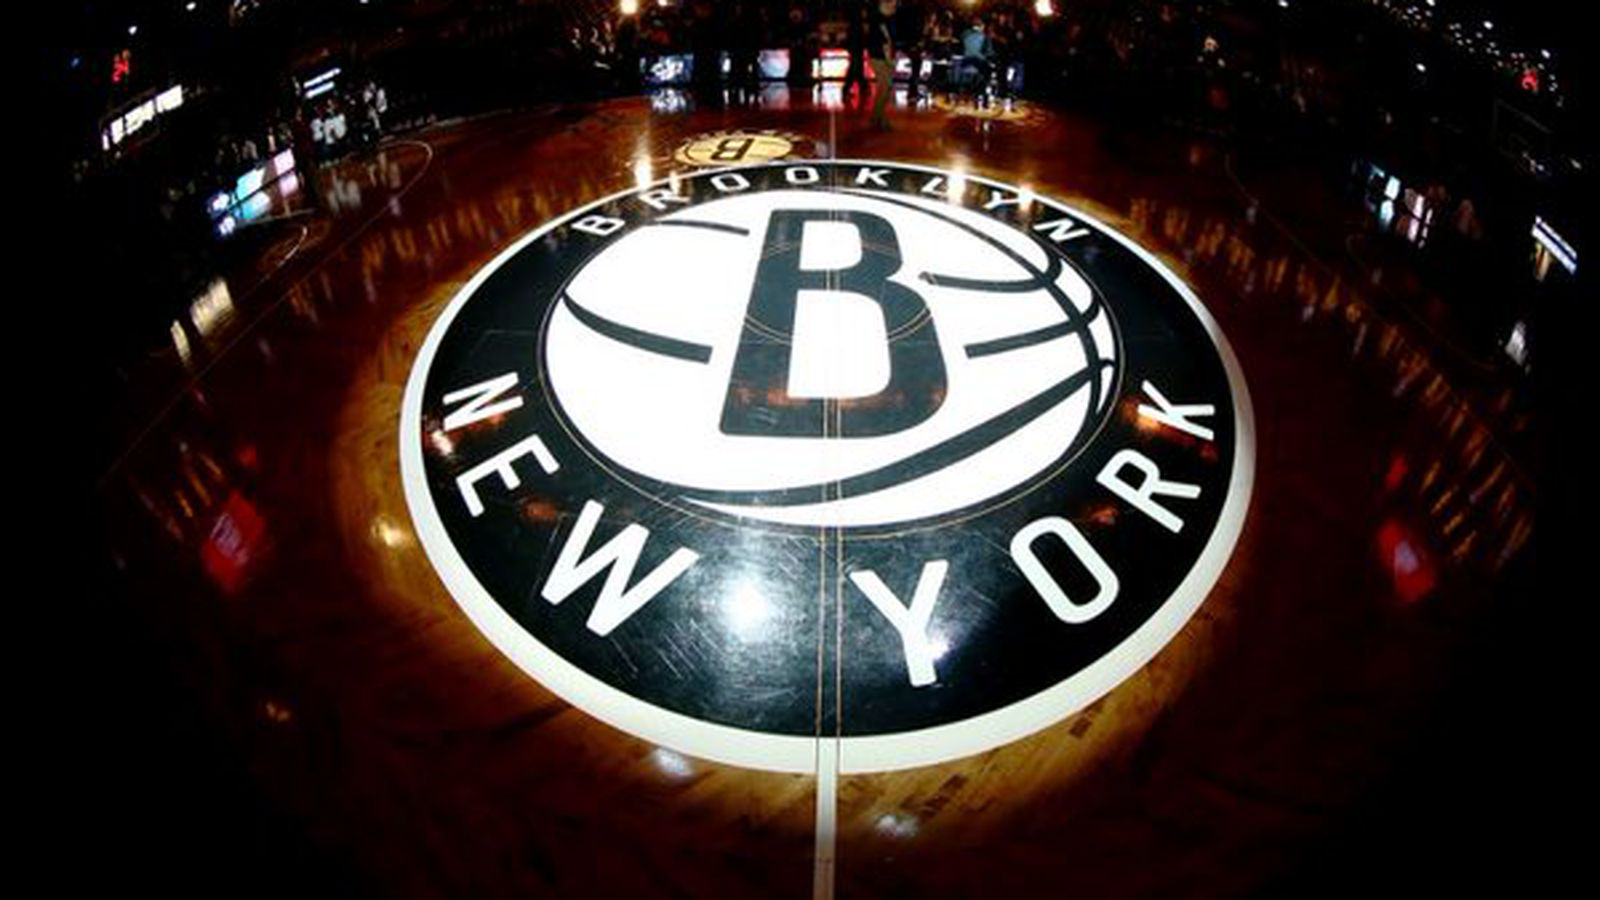 Nets_logo_on_barclays_court.0.0